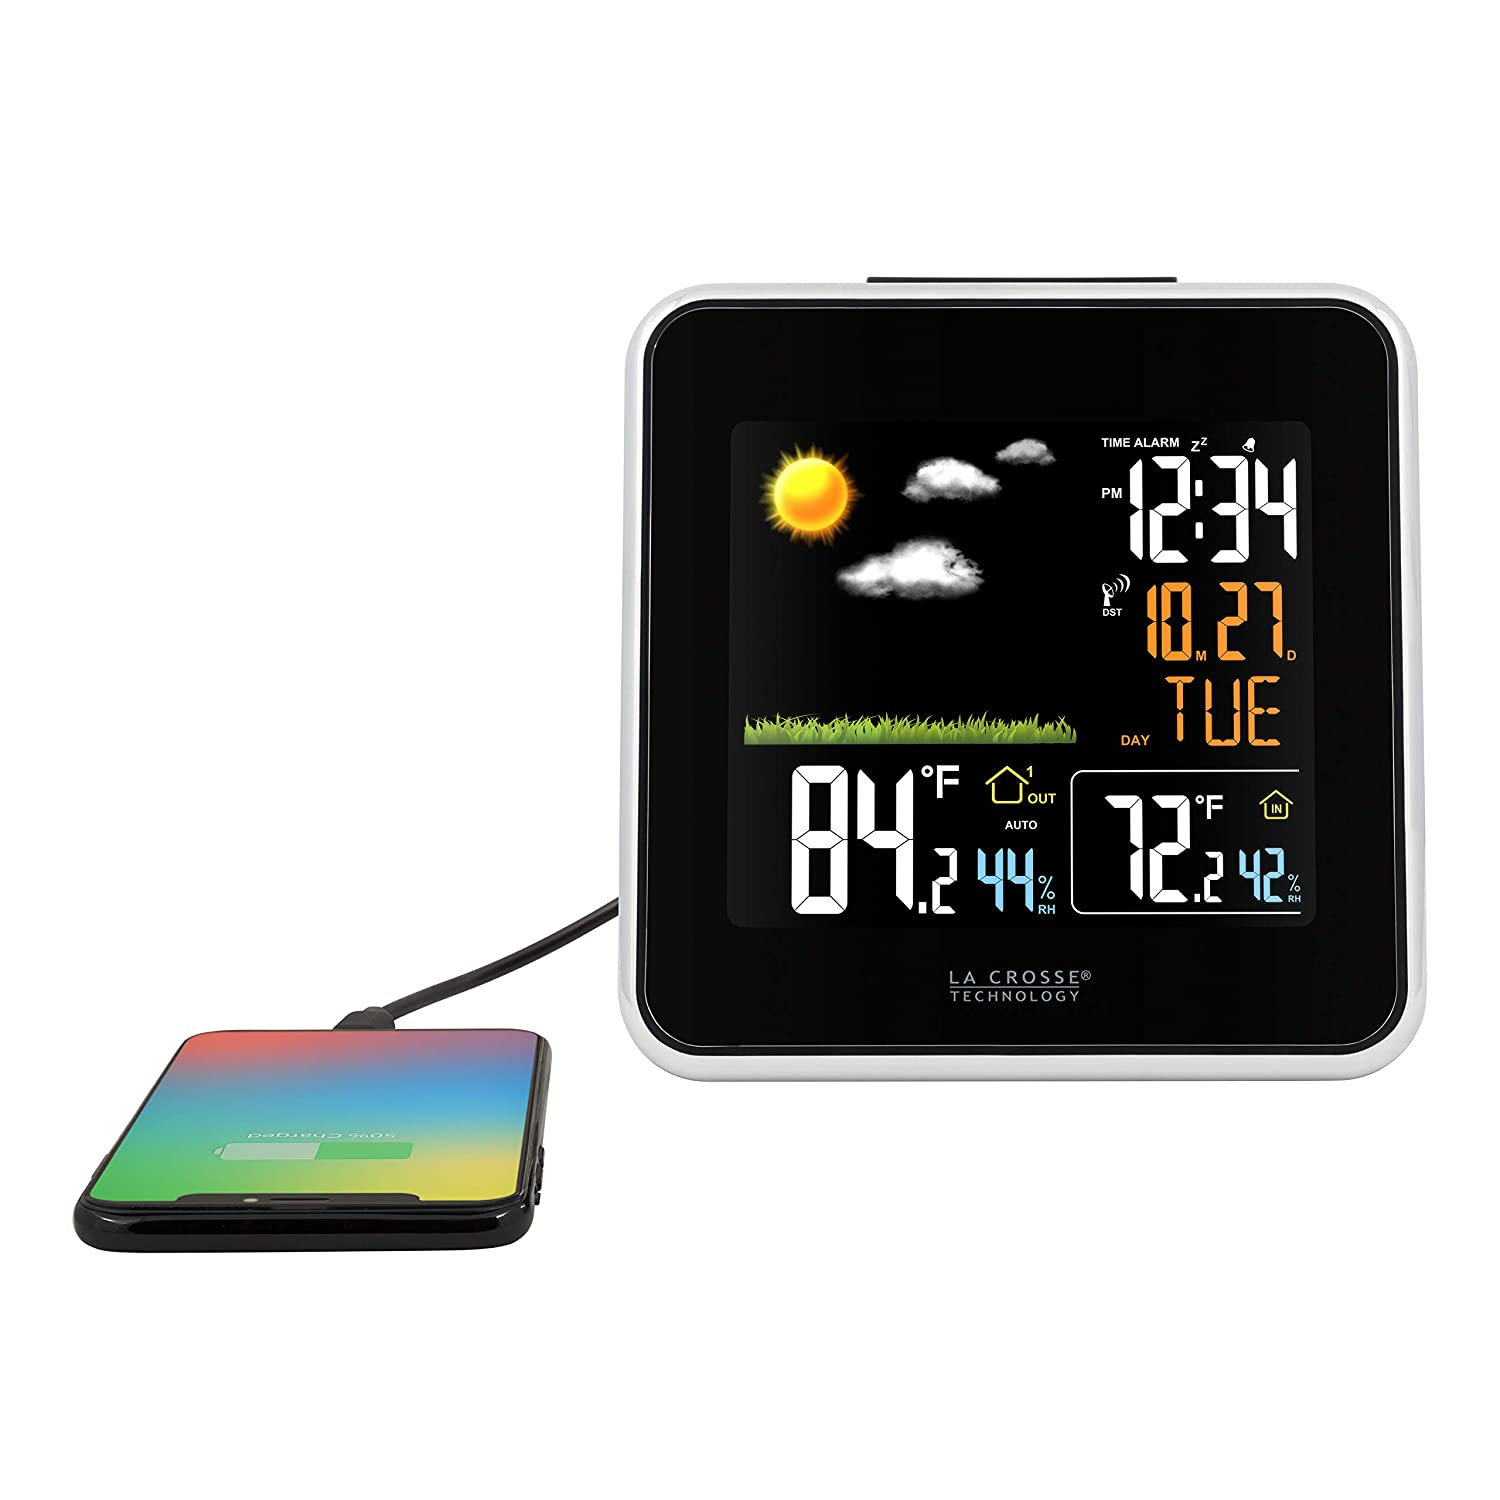 La Crosse Technology 308-146 Atomic Wireless Color Forecast Station with Dew Point, Heat Index, USB Charging Port